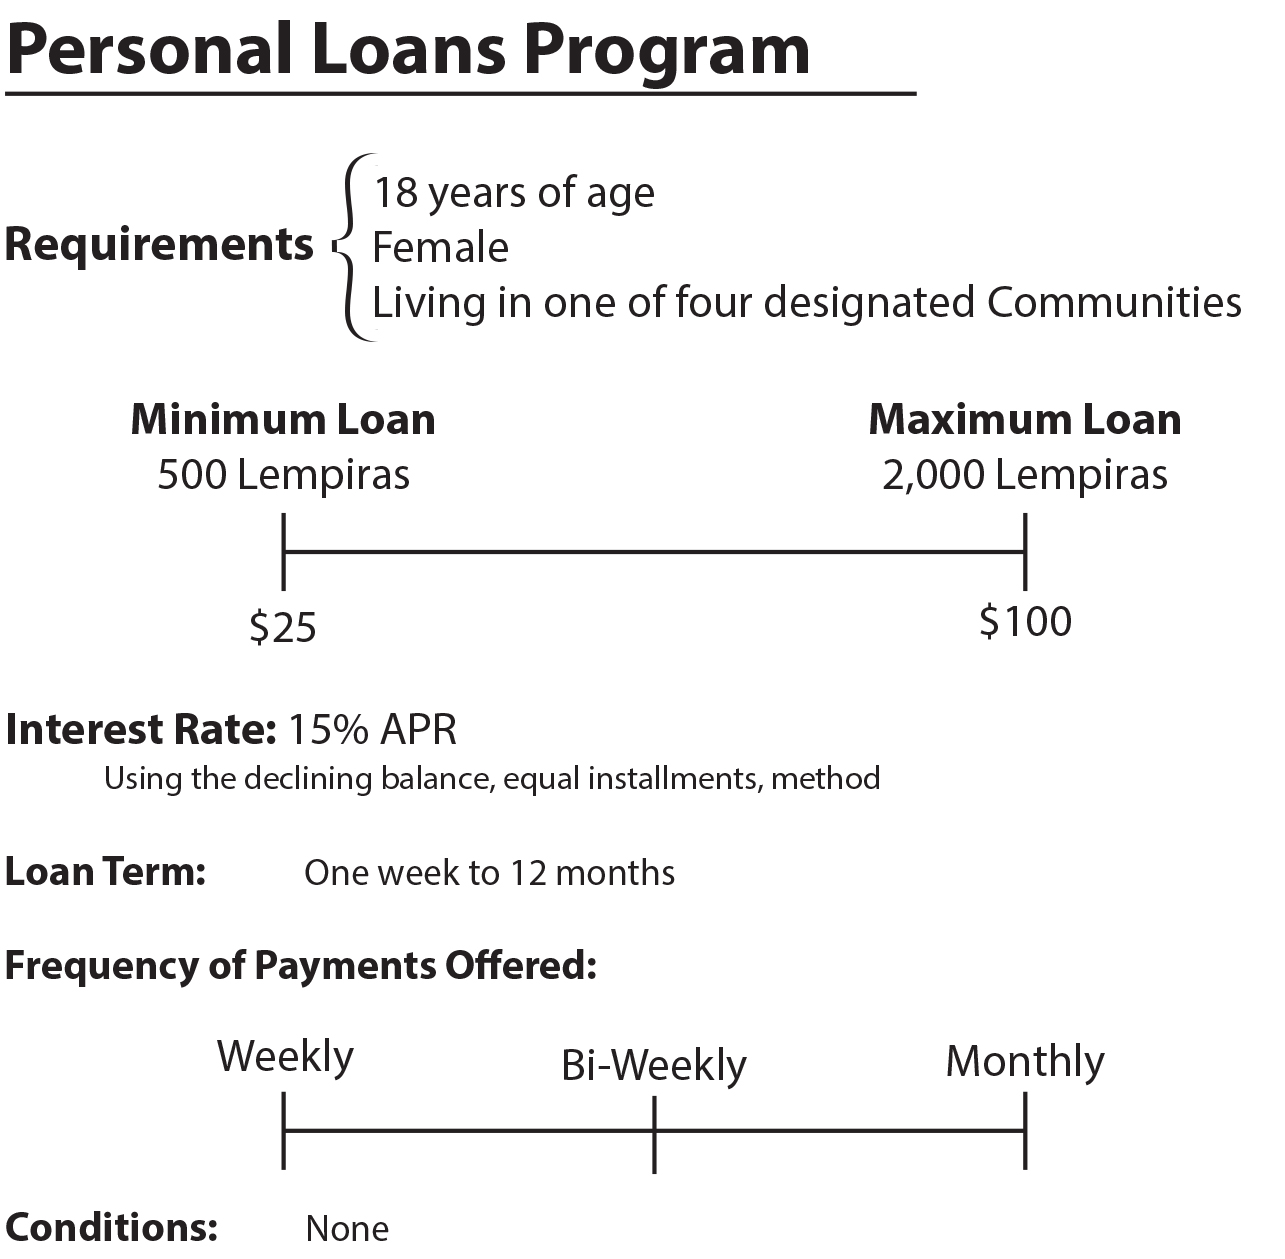 Contract for Loaning Money to Family Members Payday loans in irving – Cash Loan Agreement